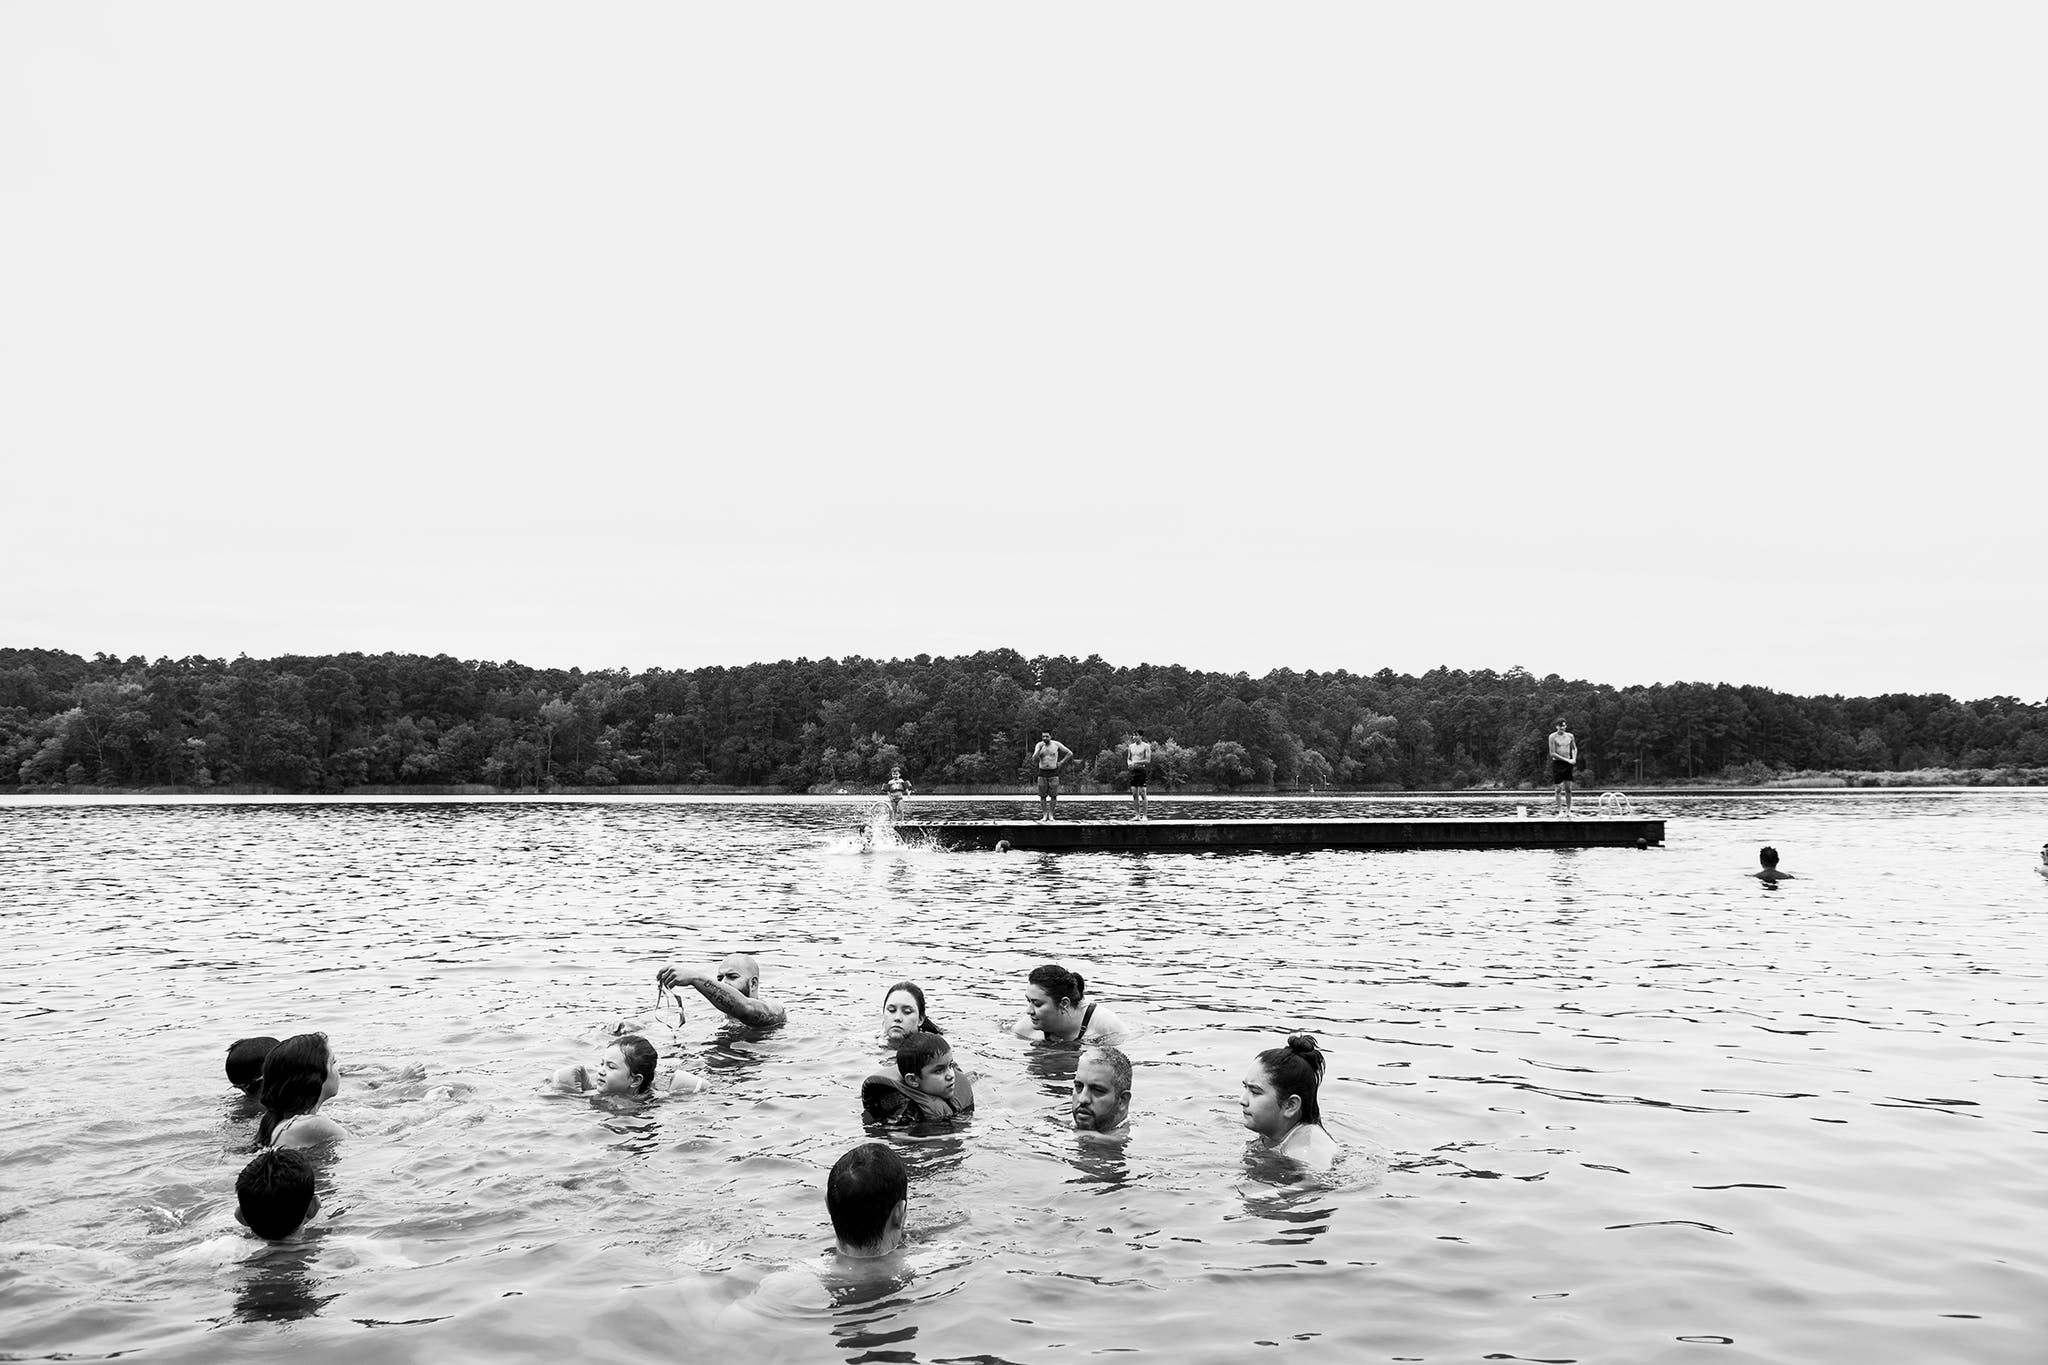 Carefree park-goers enjoying the lake at Tyler State Park pre-pandemic, in August 2019.